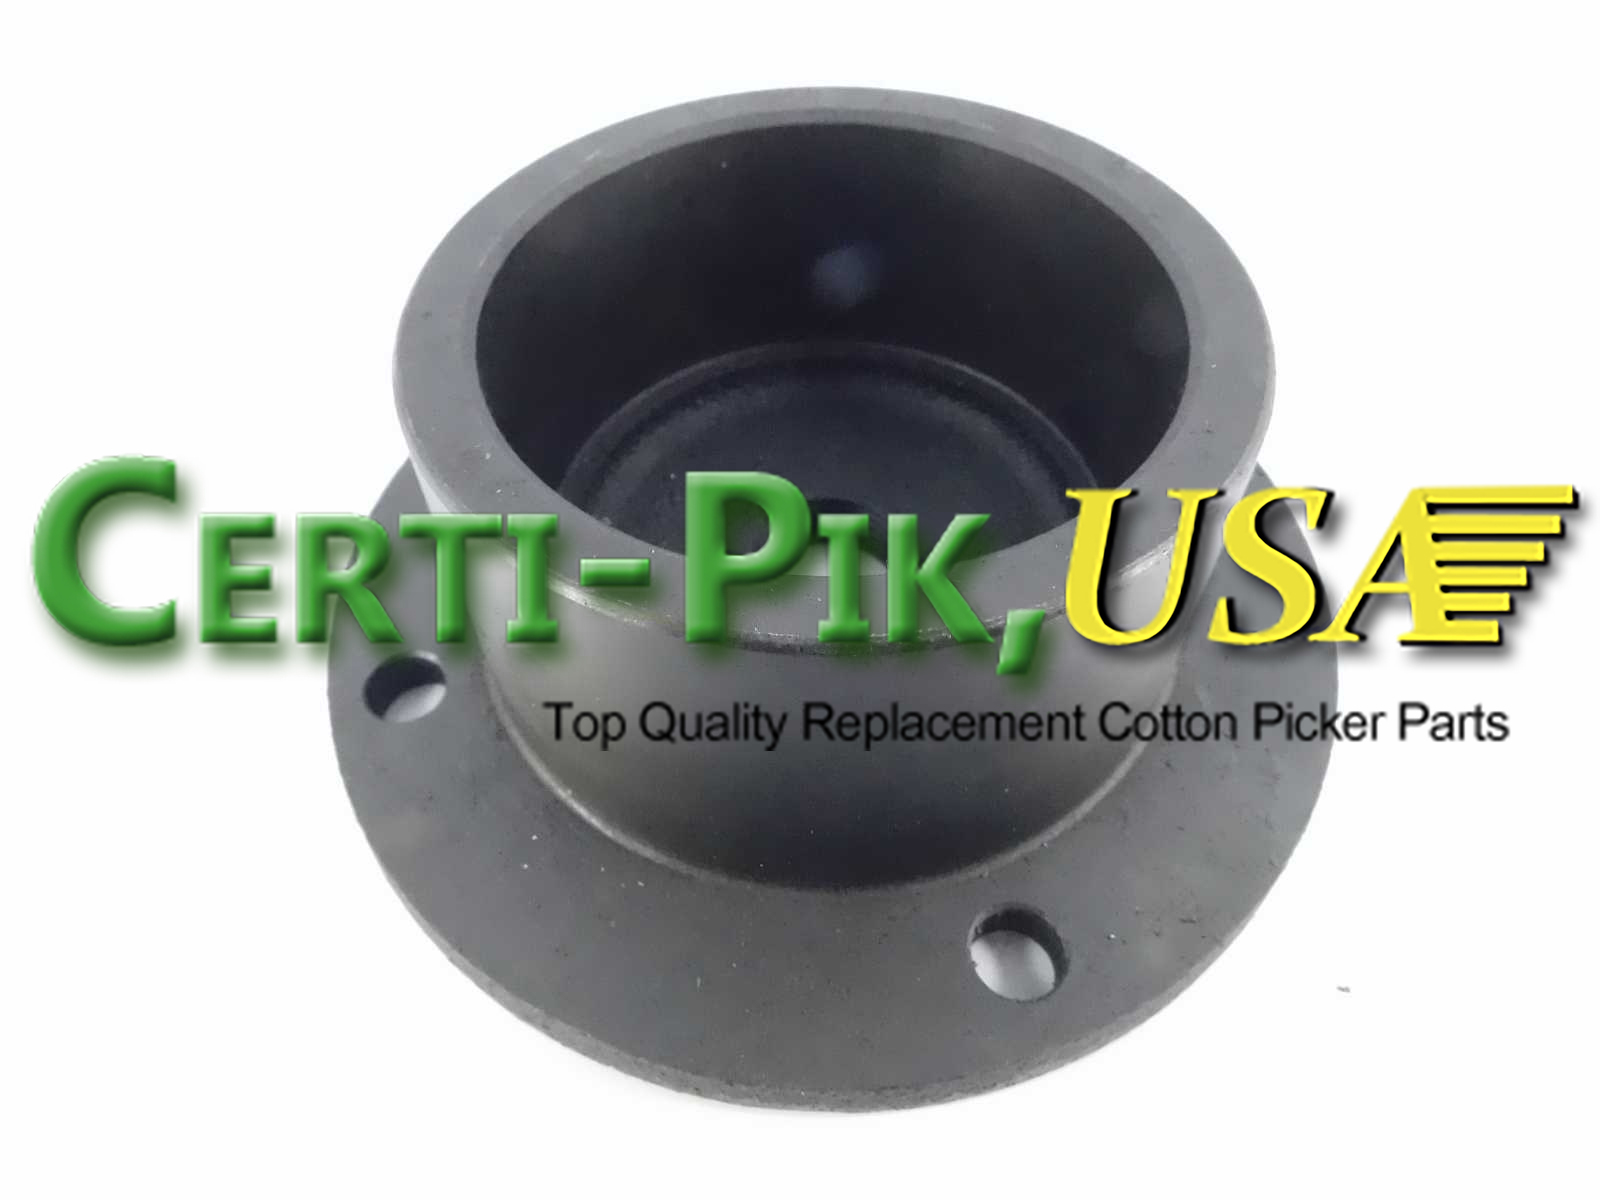 Picking Unit System: John Deere Upper Doffer Adjustment Housing and Sprockets Assembly N114205 (14205) for Sale